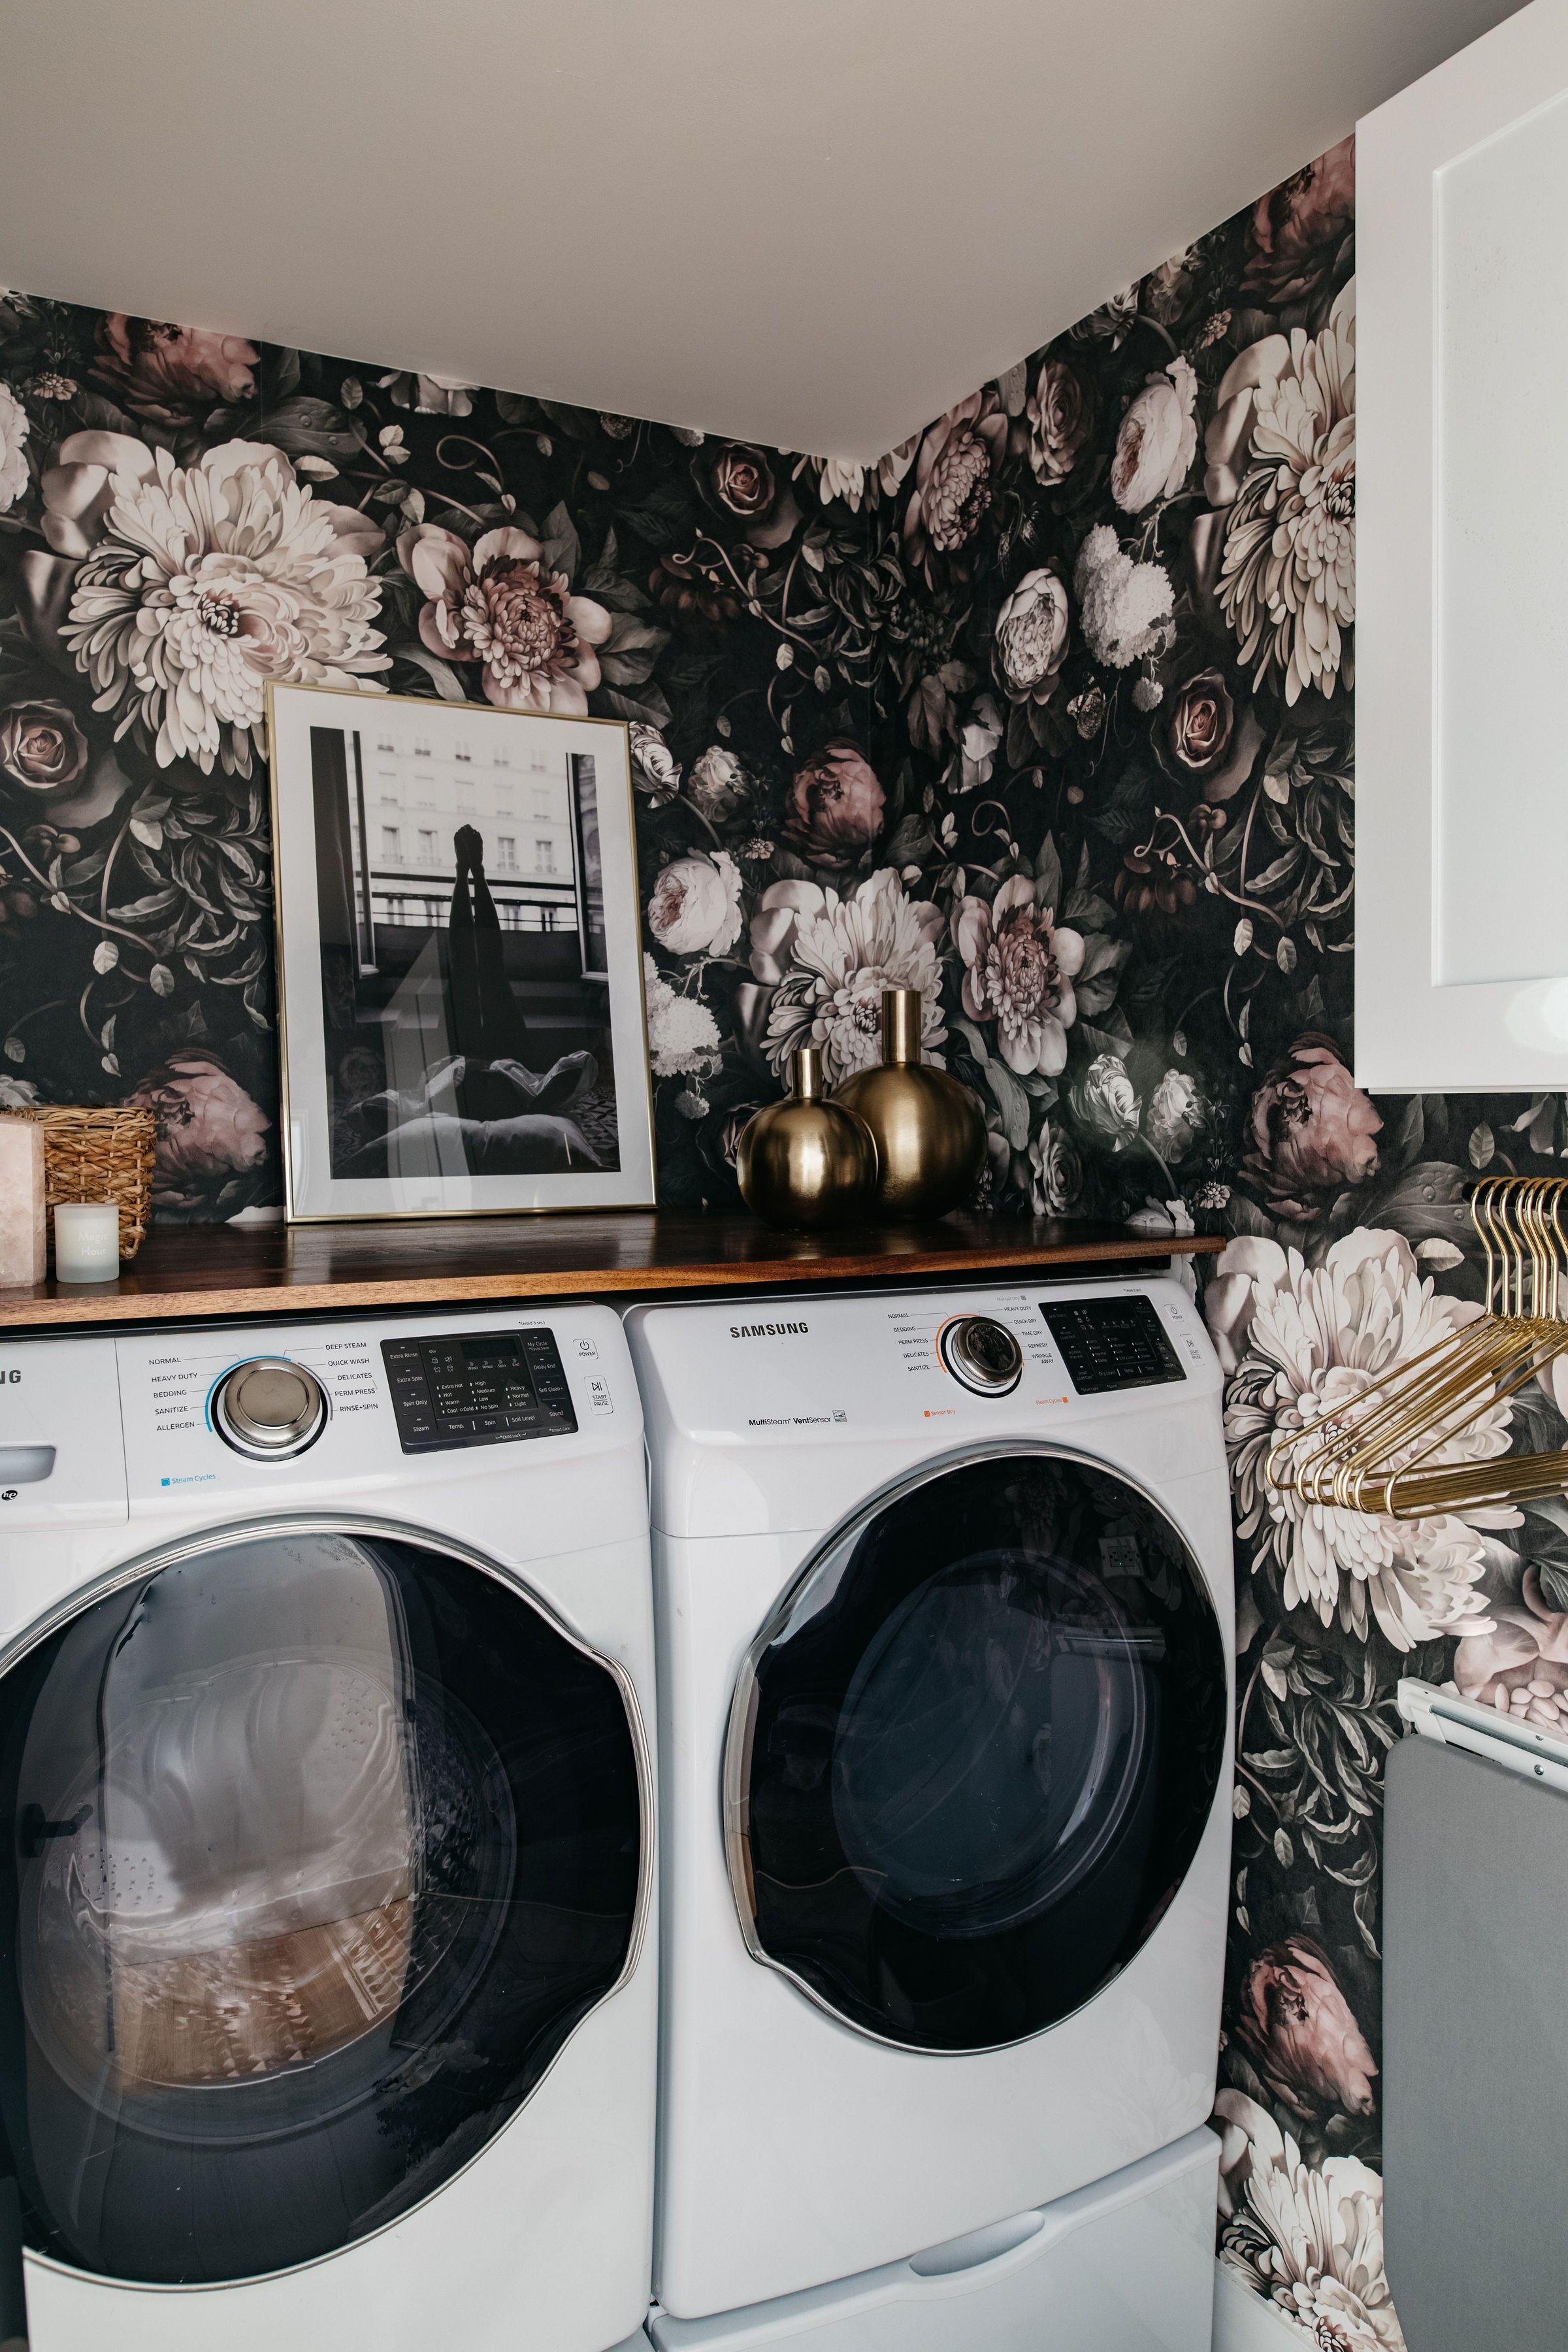 So Who Out There Loves Doing Laundry Crickets That S What I Thought What If I Told You That Adding Some Character To In 2020 Laundry Room Small Spaces Rooms Reveal